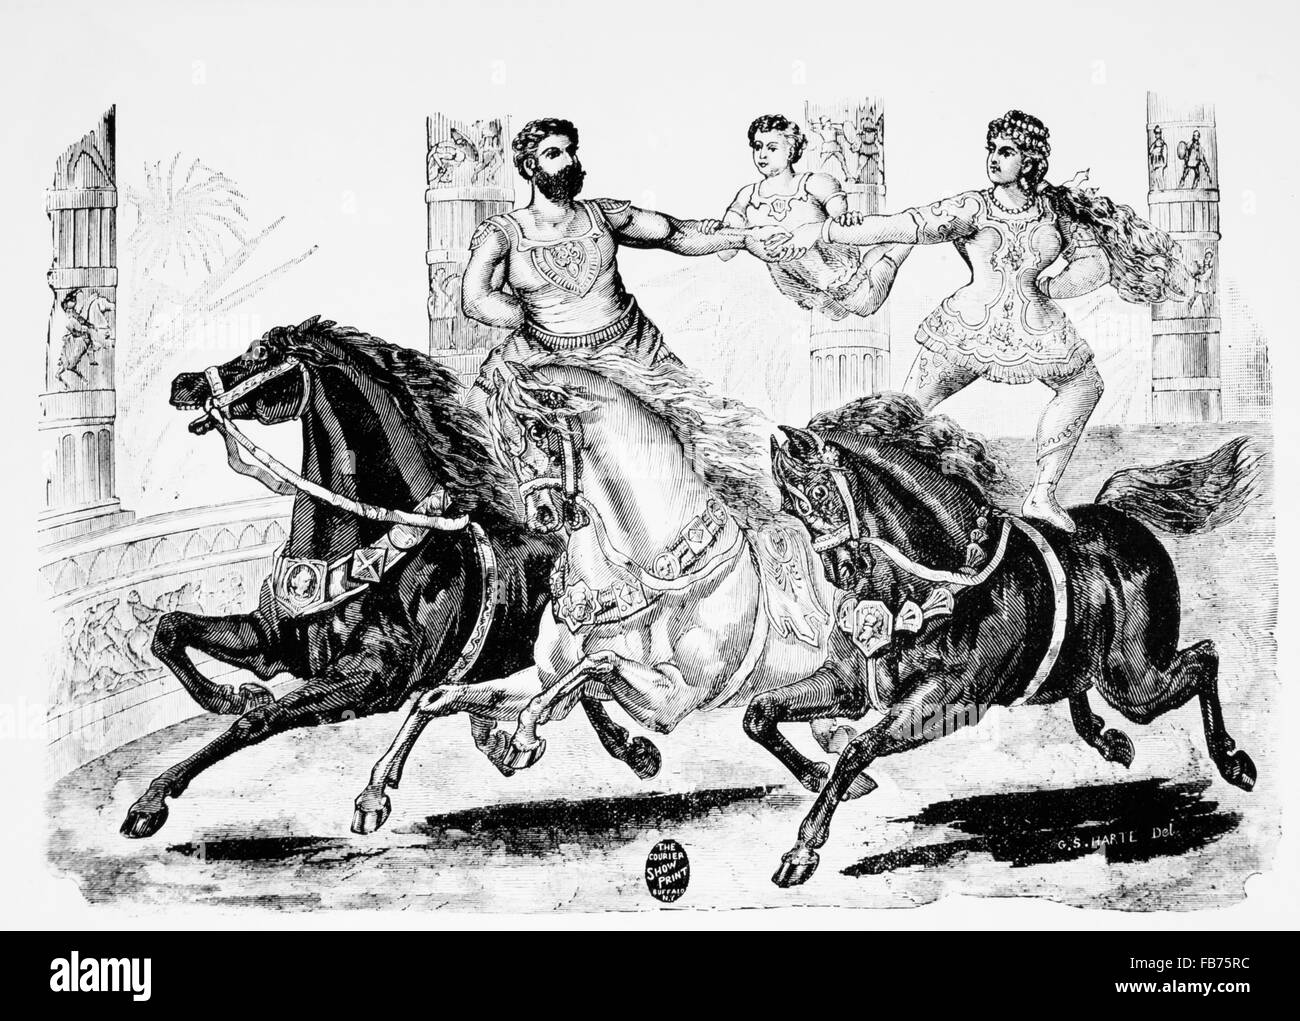 Man and Woman Riding Bareback on Horses While Holding Child Between Them, Circus Performance, Engraving, 19th Century - Stock Image